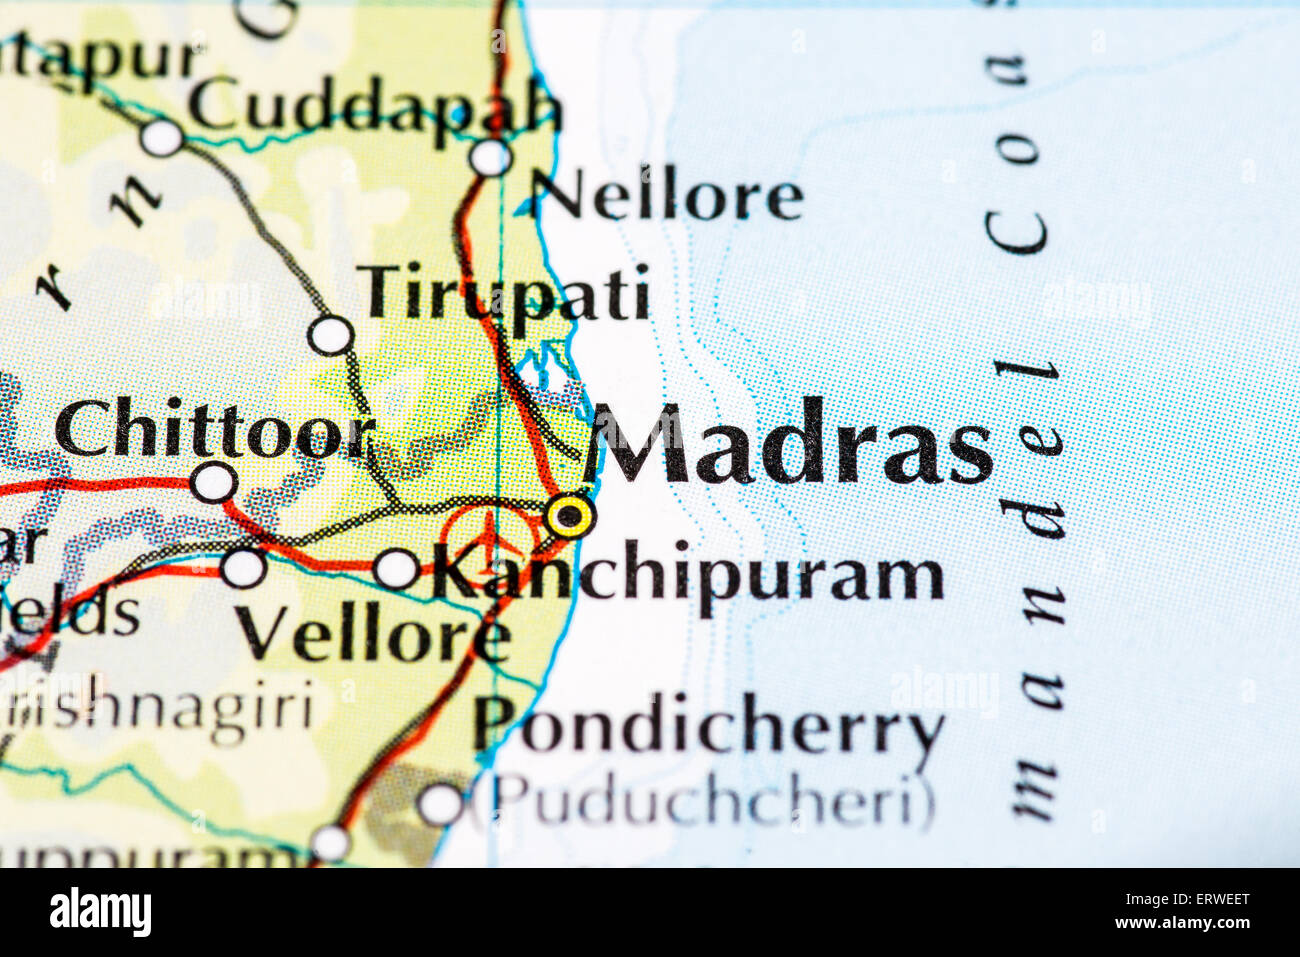 Madras India Map.Close Up Of Atlas Map Of Madras In India Stock Photo 83538752 Alamy